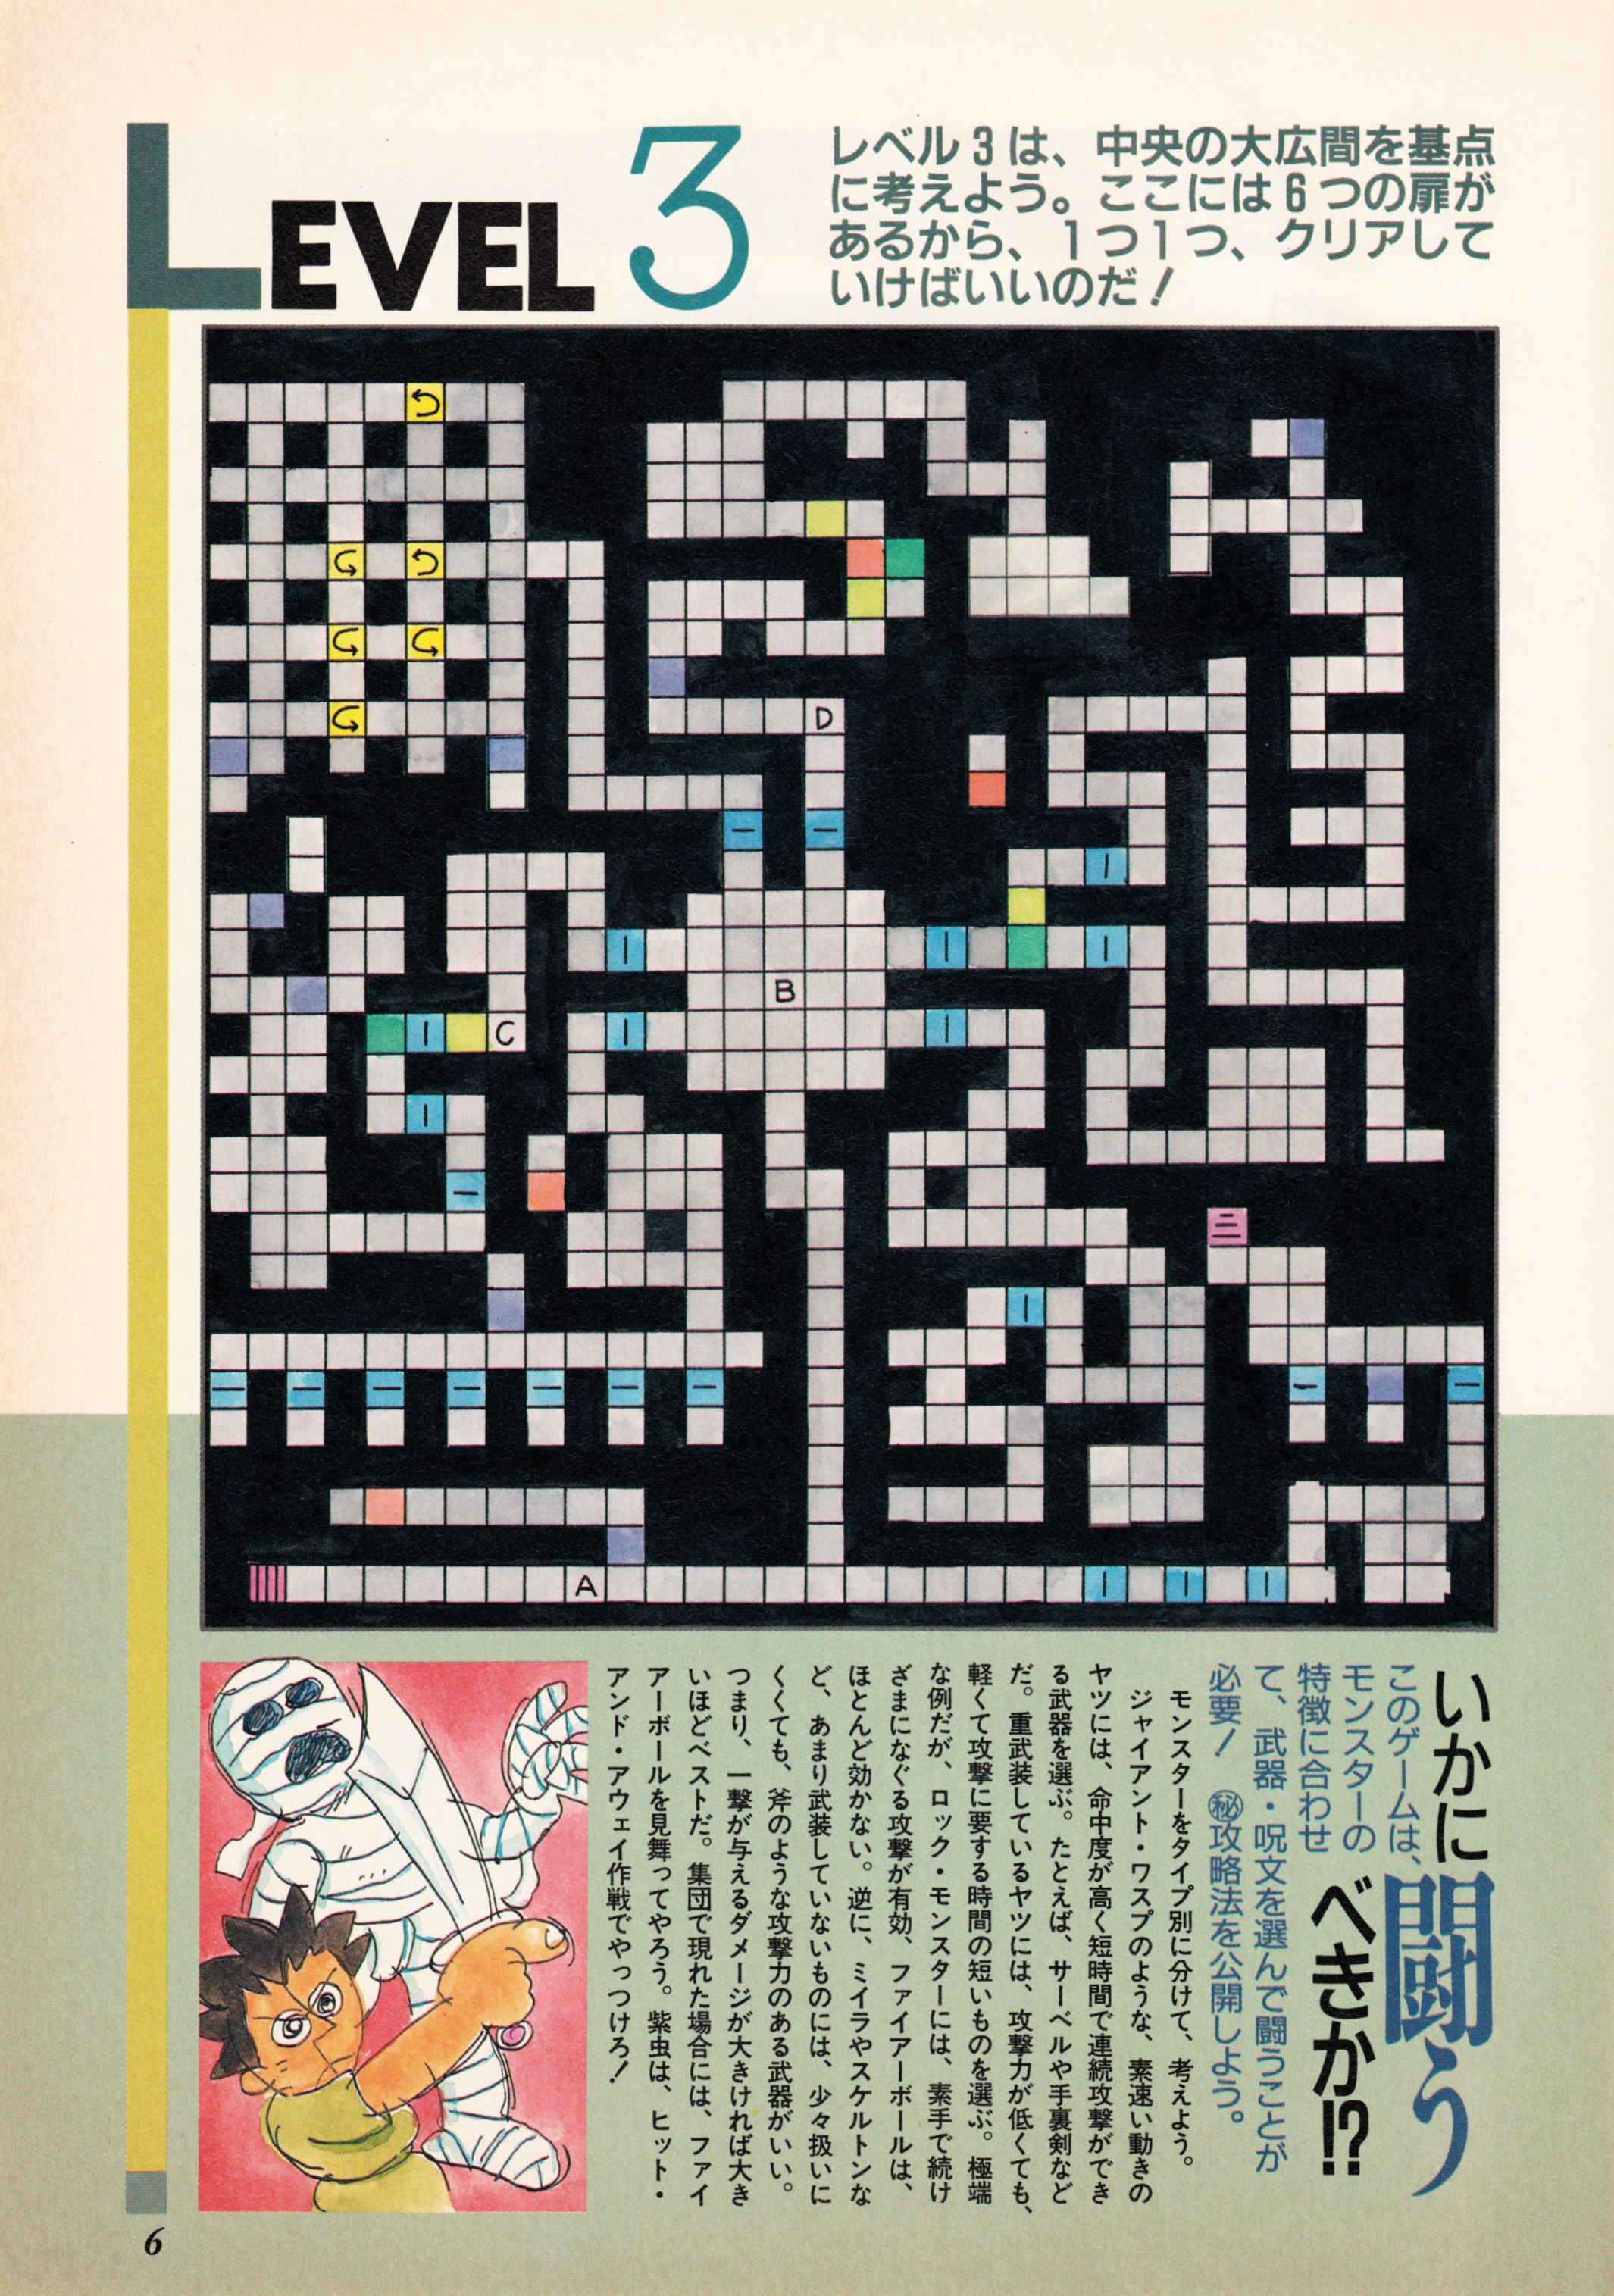 Supplement - Dungeon Master Companion Manual Guide published in Japanese magazine 'Popcom', Vol 4 No 1 01 April 1990, Page 8